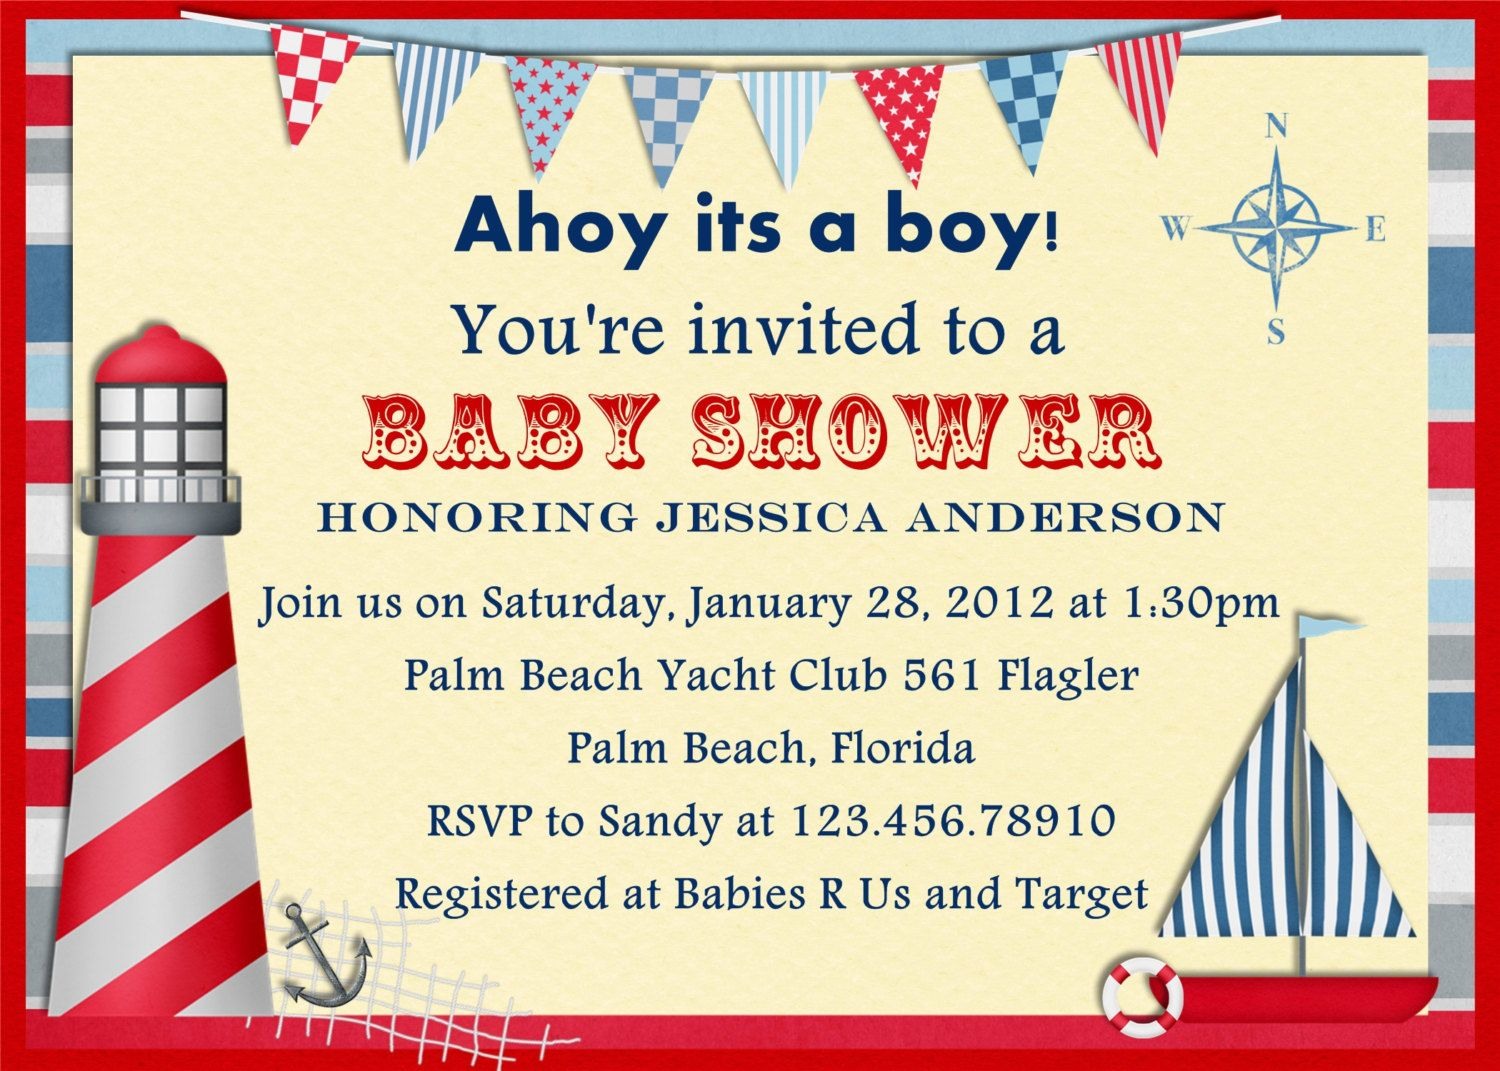 Nautical Baby Shower Invitations 4 HD Wallpapers | Invitations ...